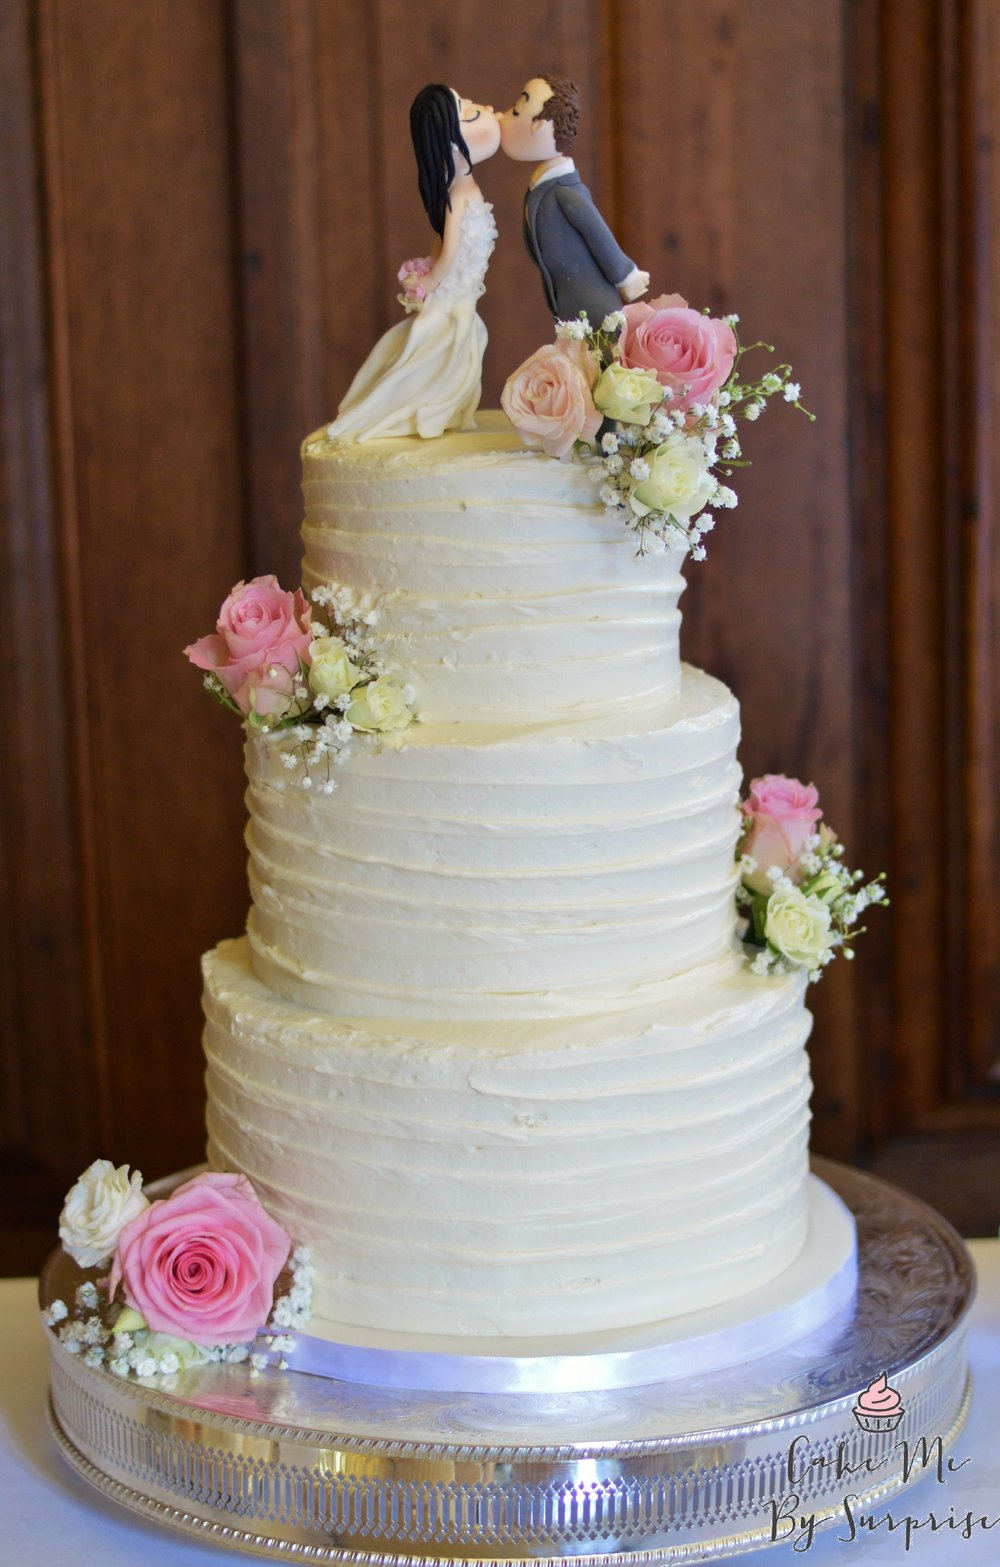 Buttercream delight A three tier wedding cake finished in a coating of delicious ruffled buttercream. Completed with fresh flowers ( supplied by chosen florist) Handmade toppers created as bespoke design £320 - £420 +